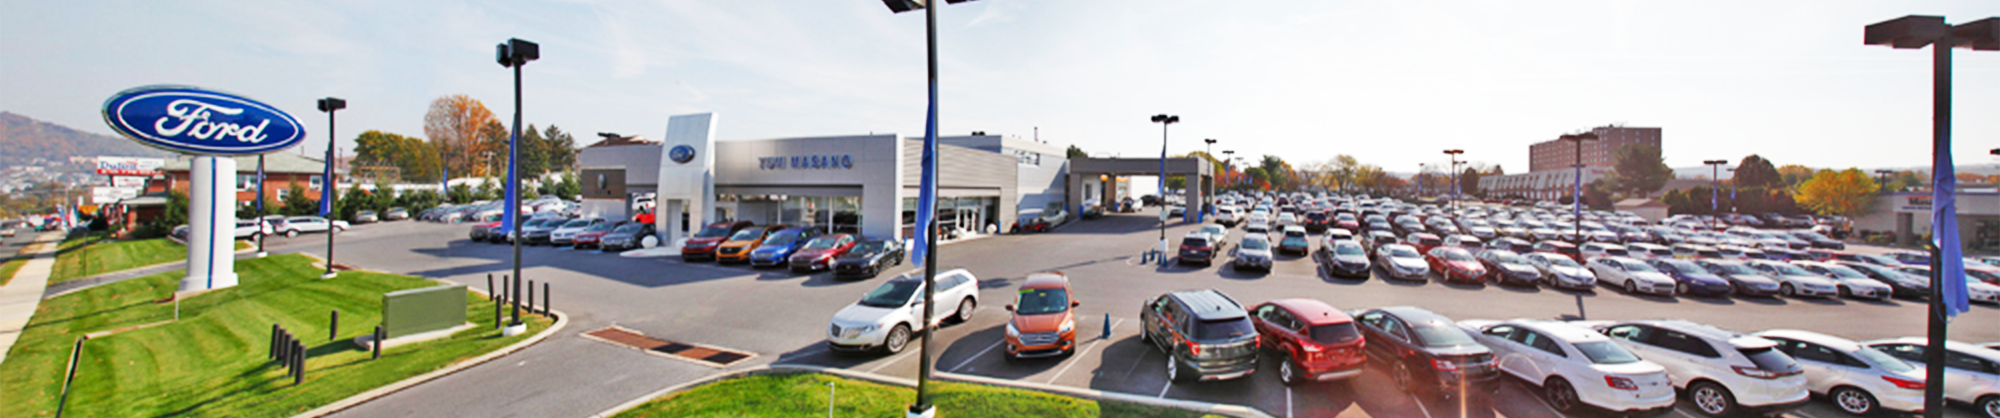 Tom Masano Used Cars >> About Tom Masano Ford Lincoln New Ford And Used Car Dealer Serving